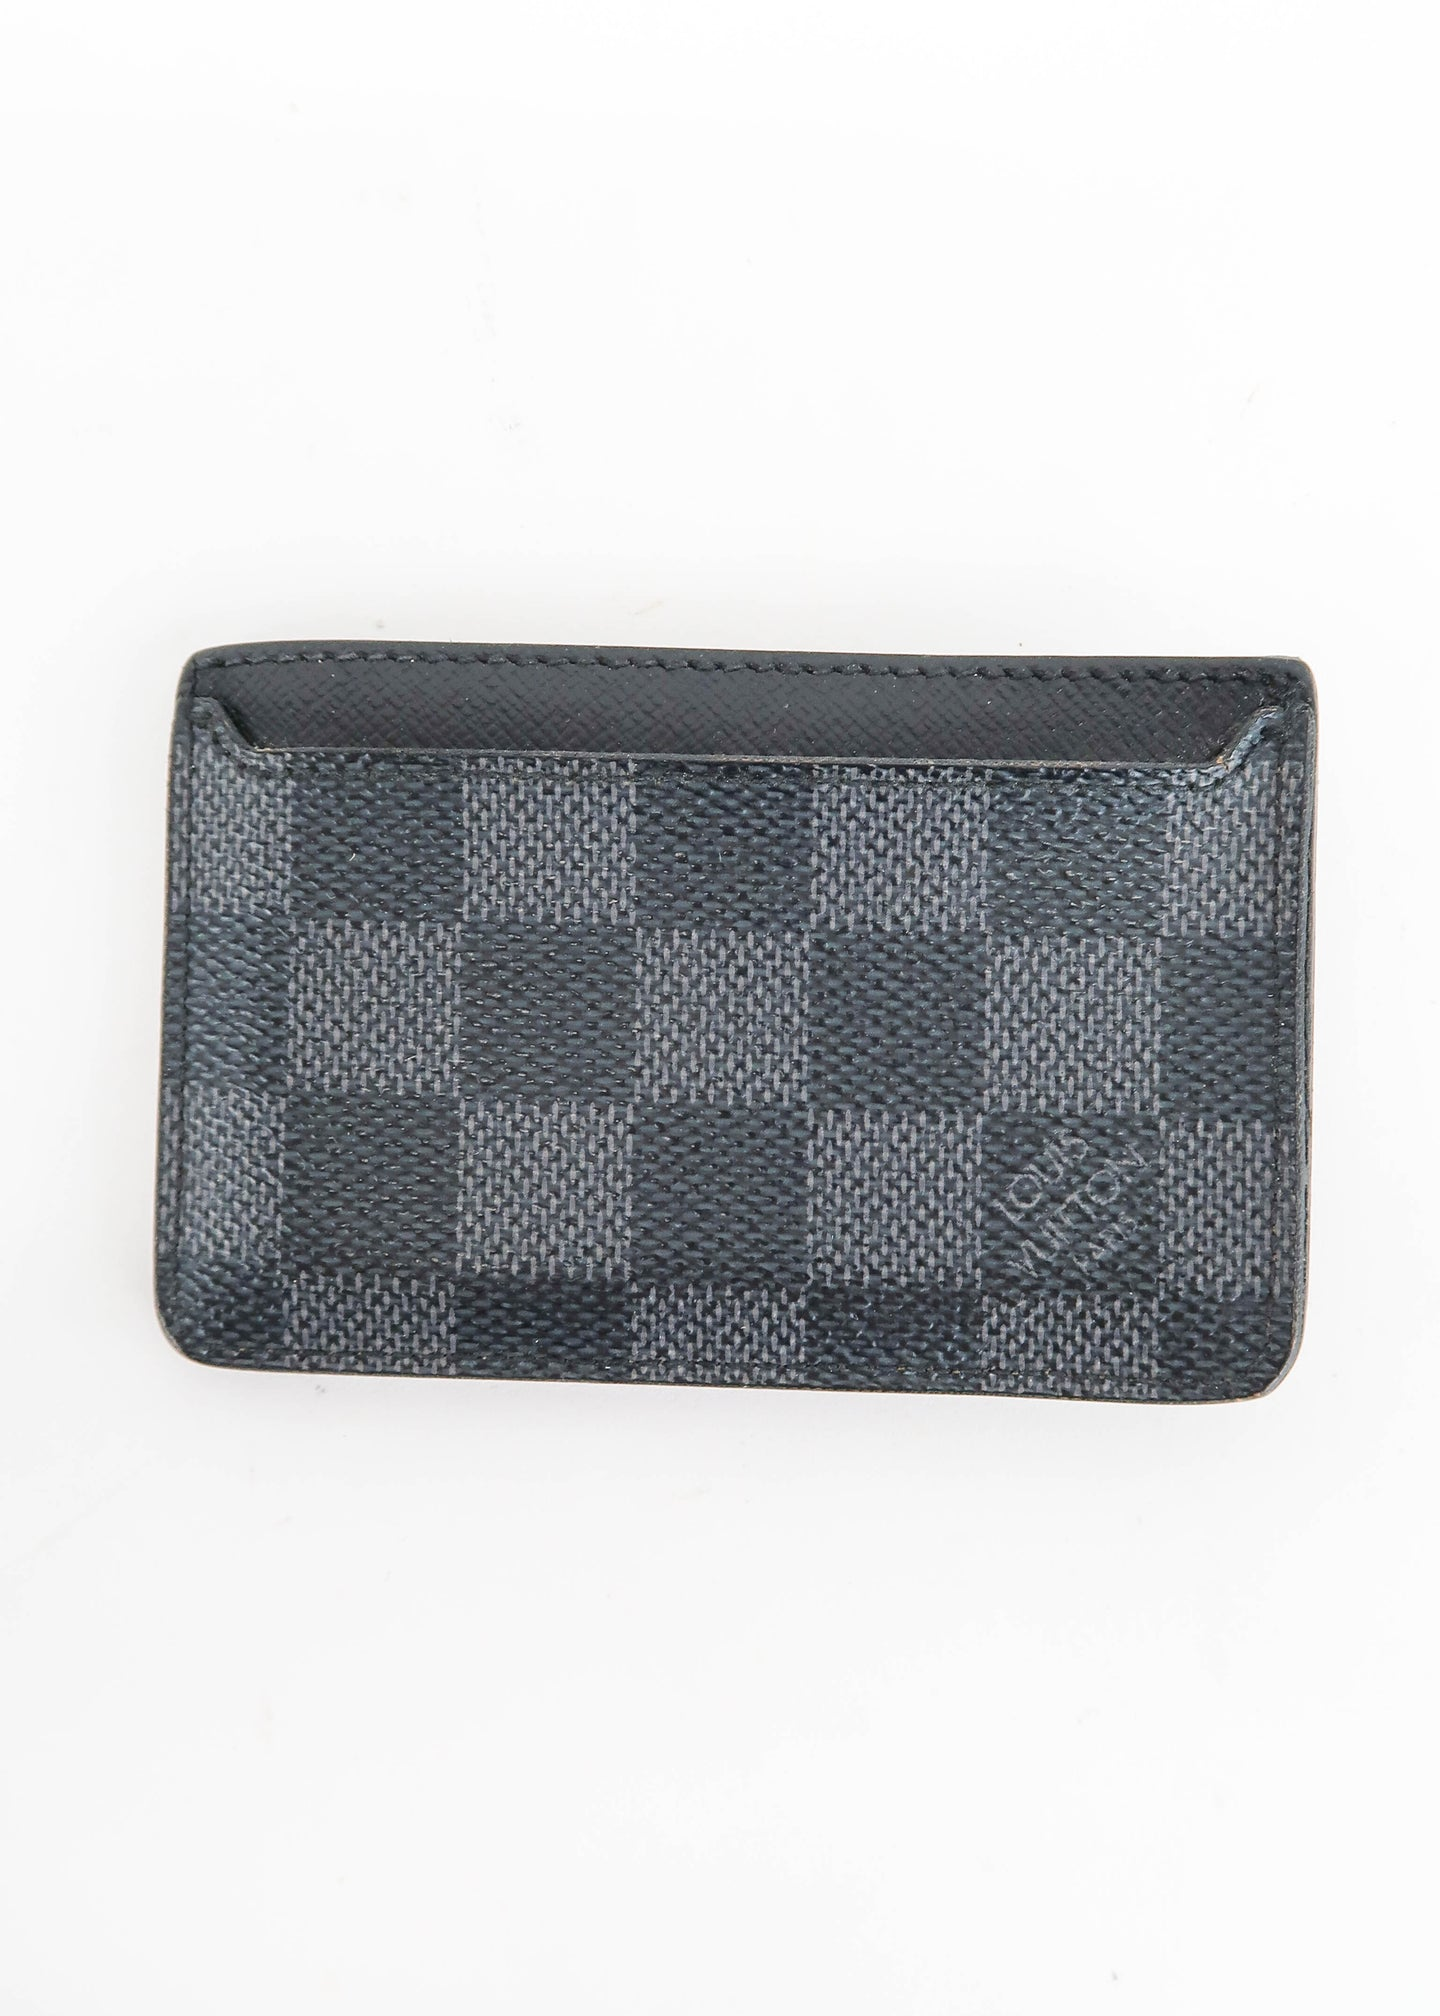 Louis Vuitton Men's Damier Graphite Porte Cardes